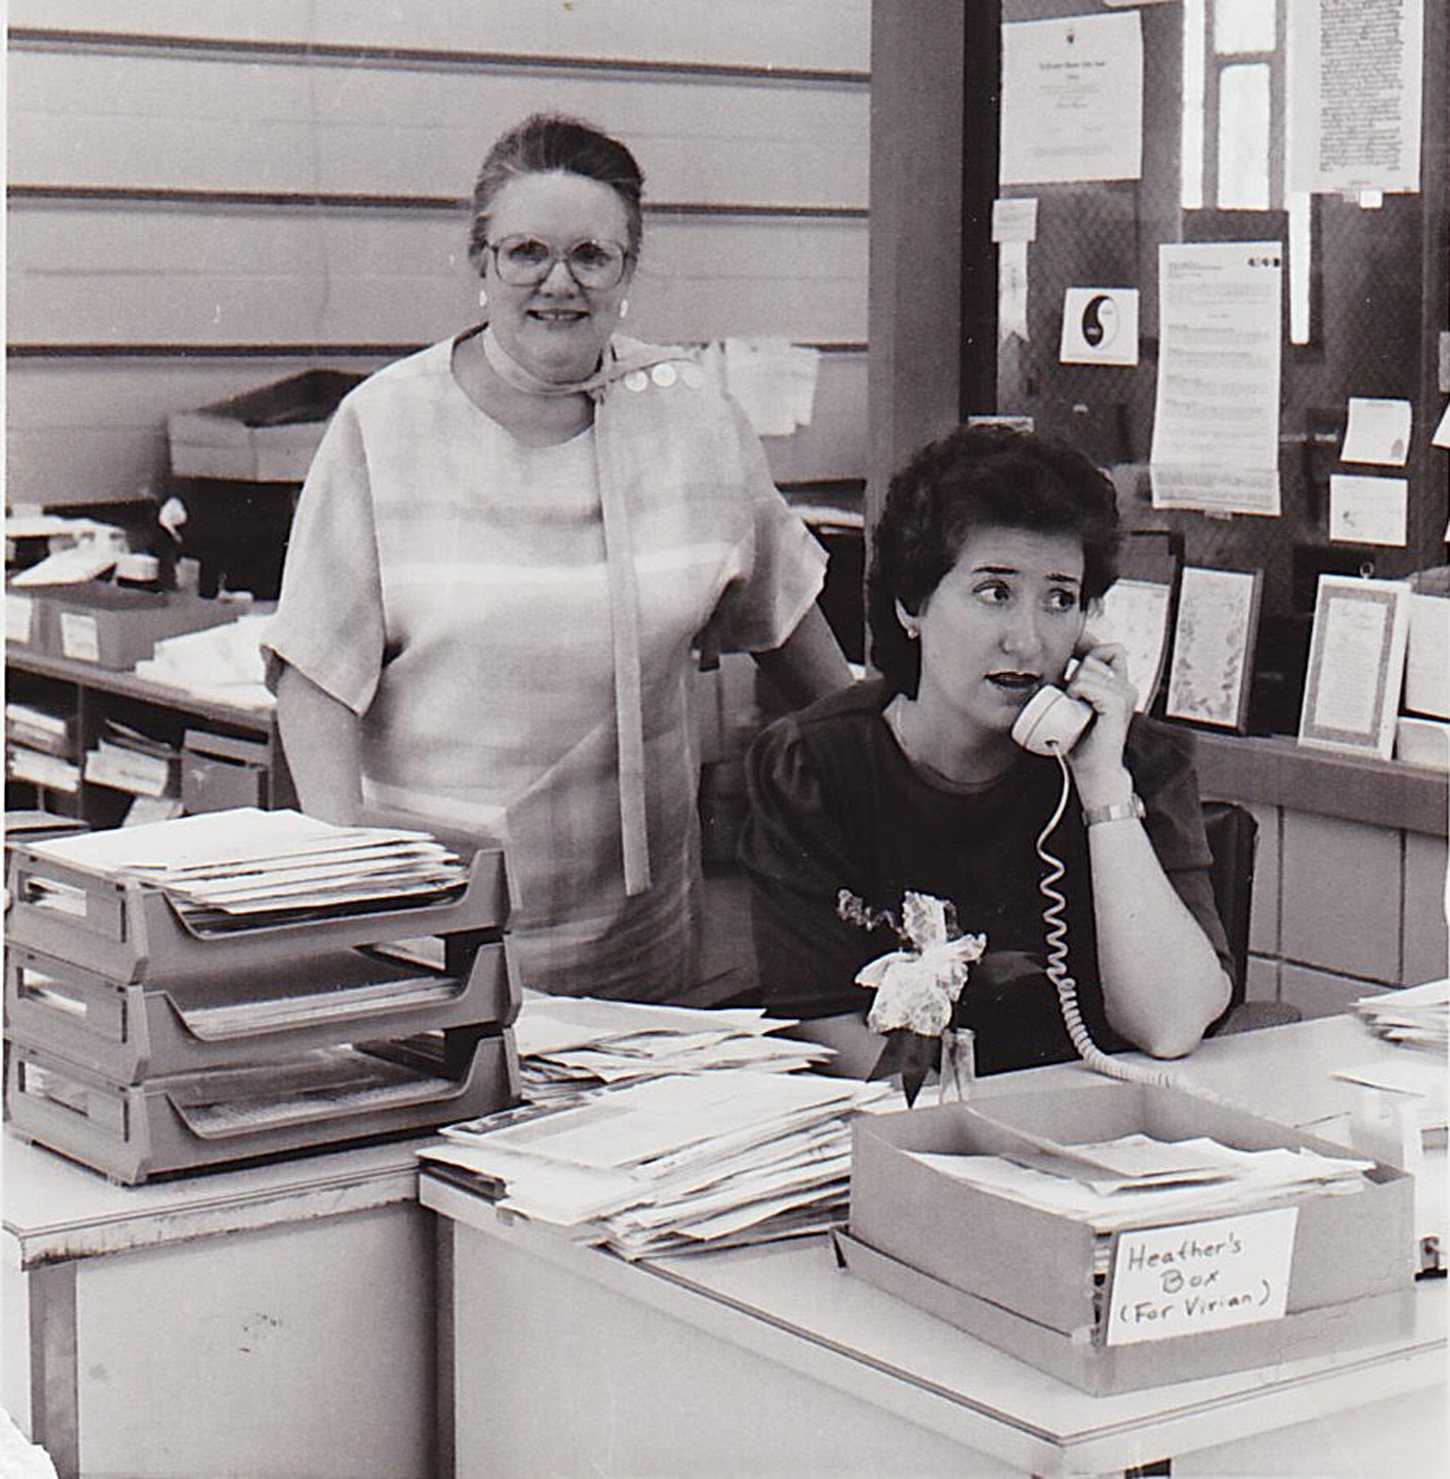 Vivian Hanson Meehan (left) in the office of the organization she founded, the National Association of Anorexia Nervosa and Associated Disorders.